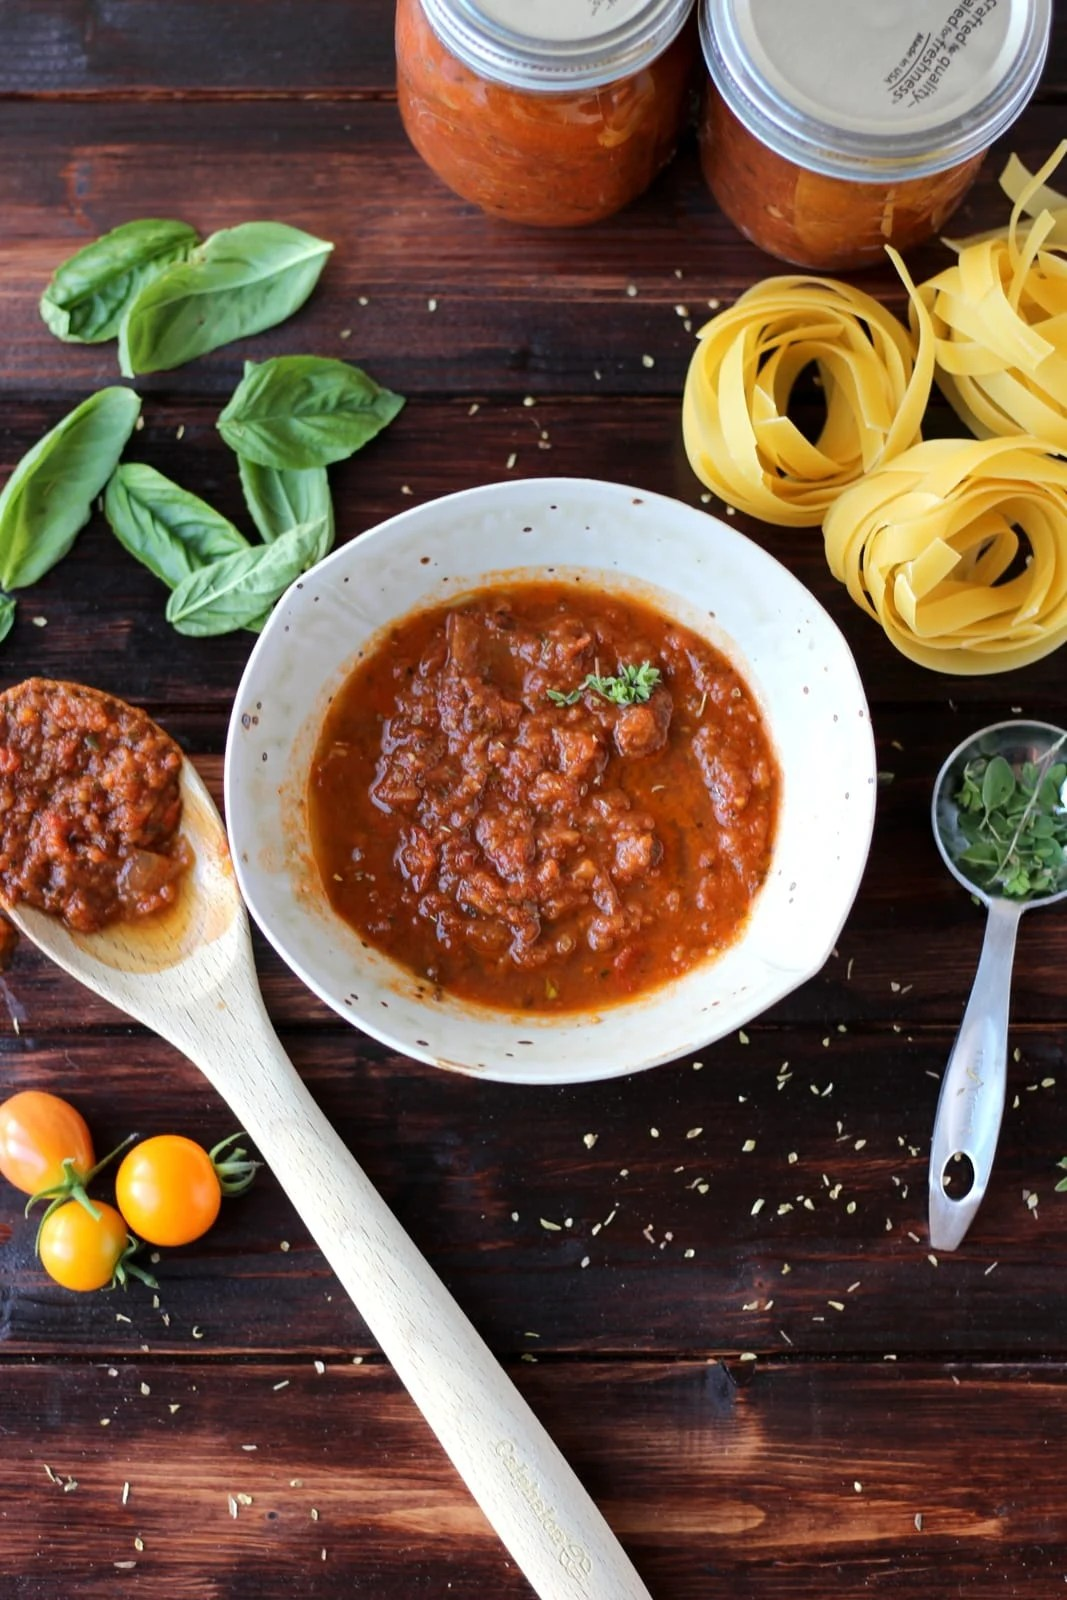 How to make homemade marinara (spaghetti sauce) - slow roasted with heirloom tomatoes and garlic - thewoodenskillet.com #pasta #fresh #garden